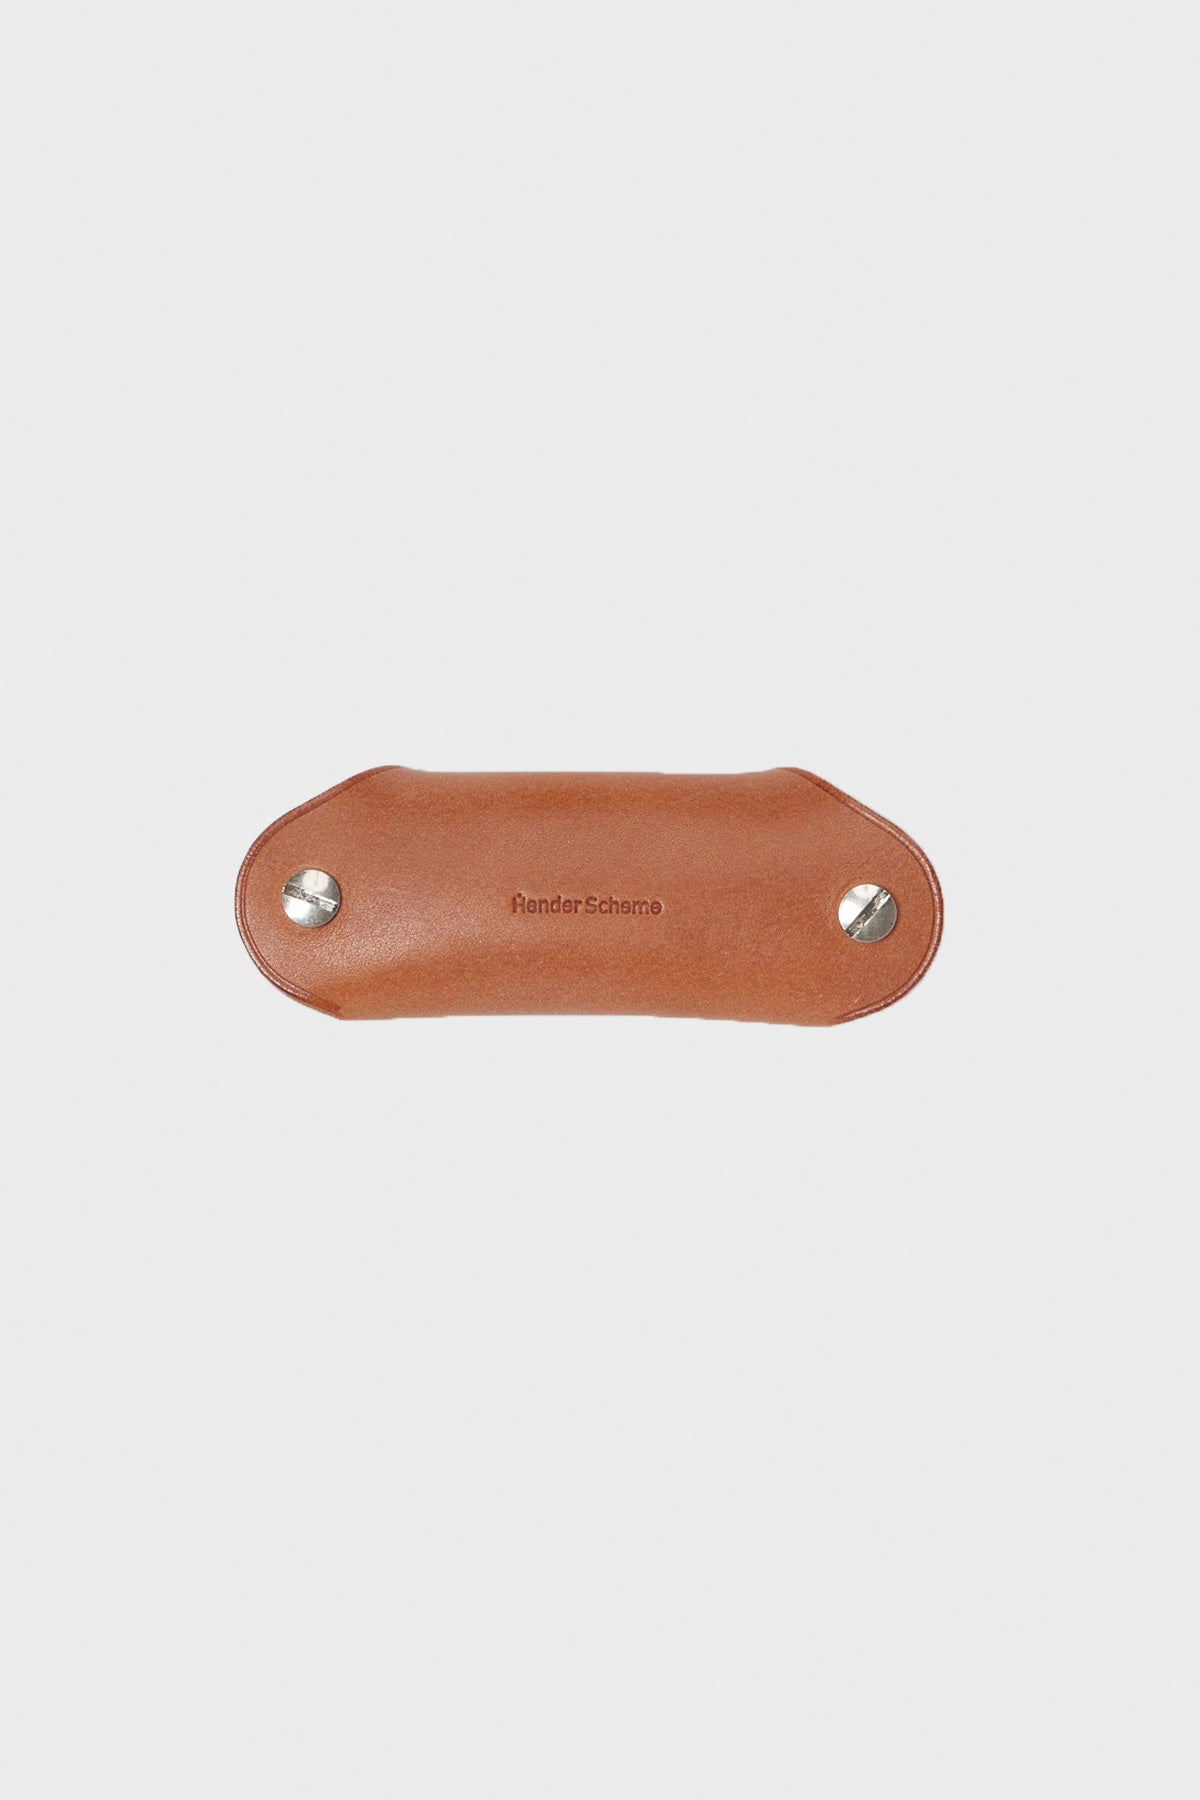 Hender Scheme - Key Bundle - Brown - Canoe Club